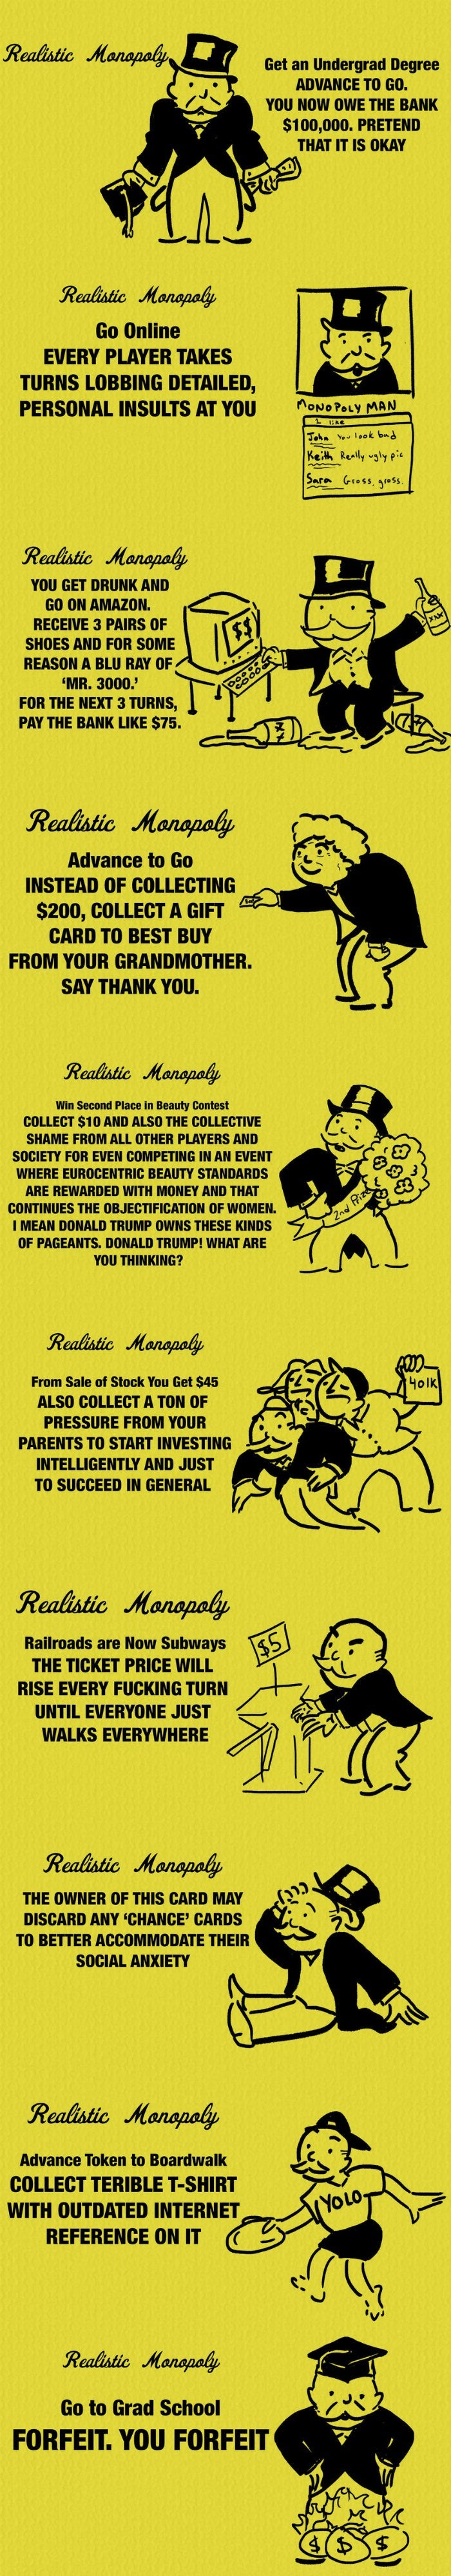 mashable's honest monopoly cards are too relatable